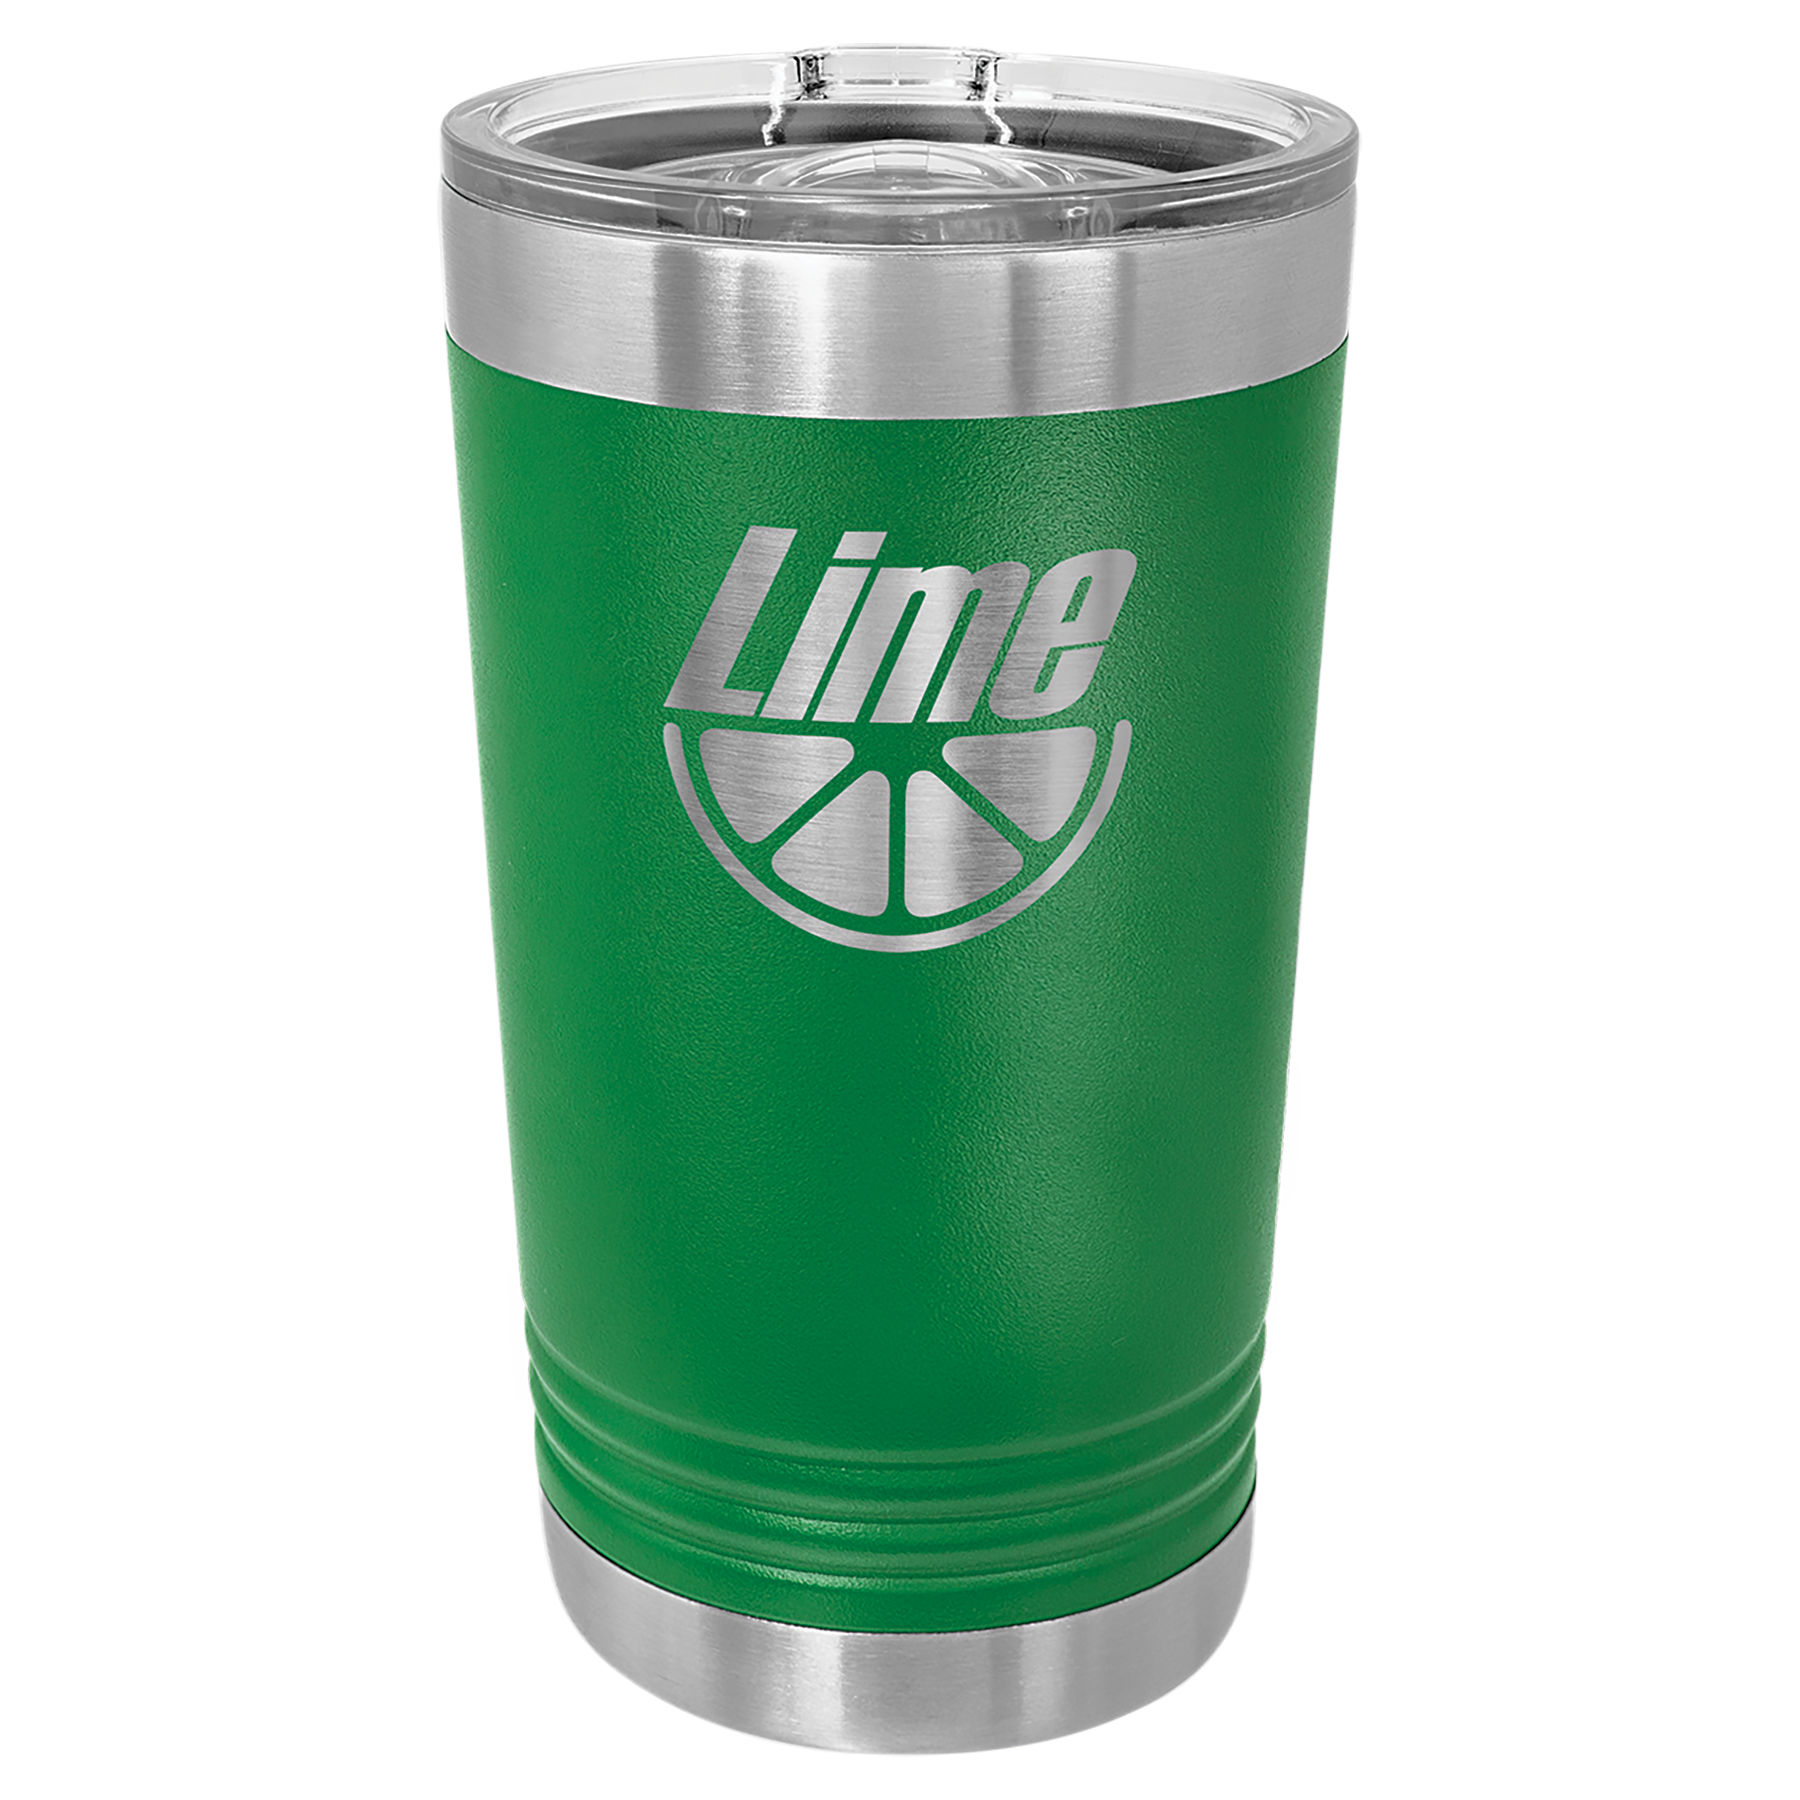 16 oz. Green Stainless Steel Polar Camel Pint with Slider Lid.  Customizable with your personal image or saying.